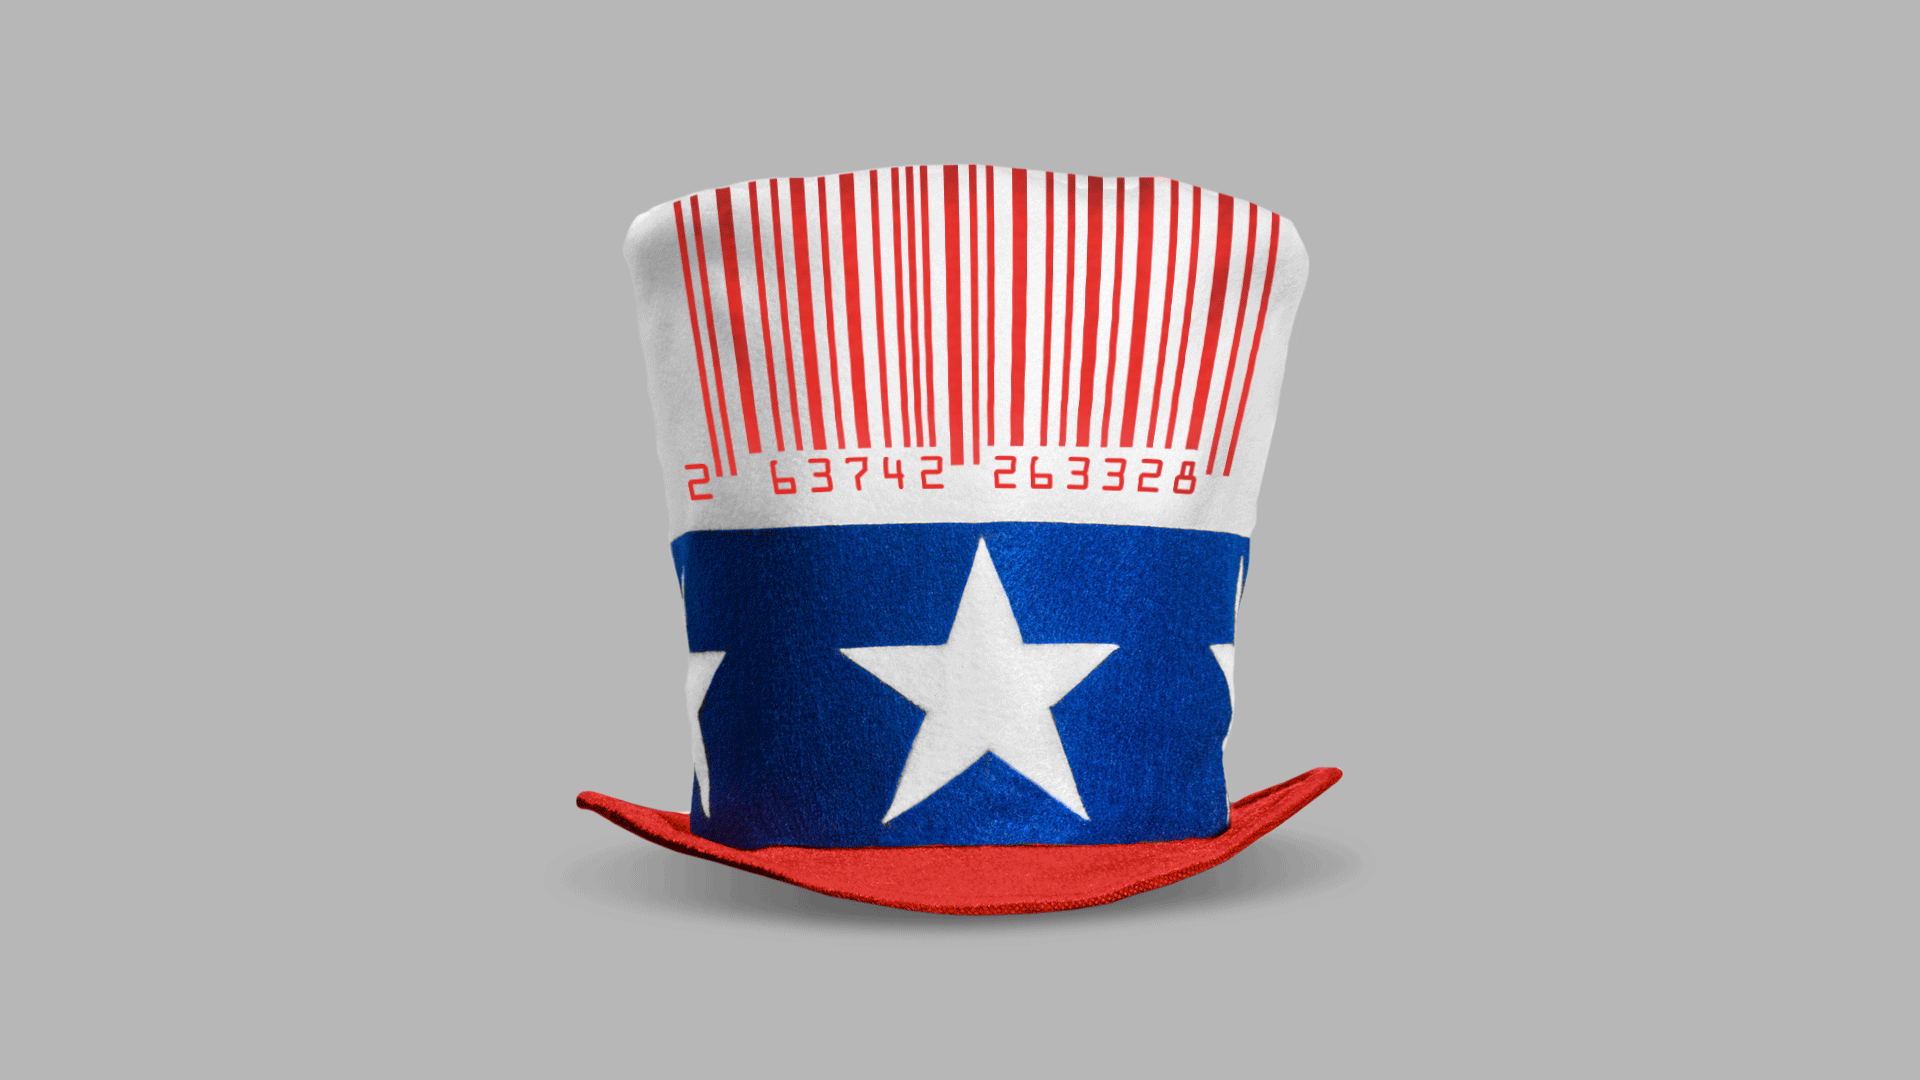 This illustration shows a hat decorated with the US red white and blue, except the red stripes are a bar code.